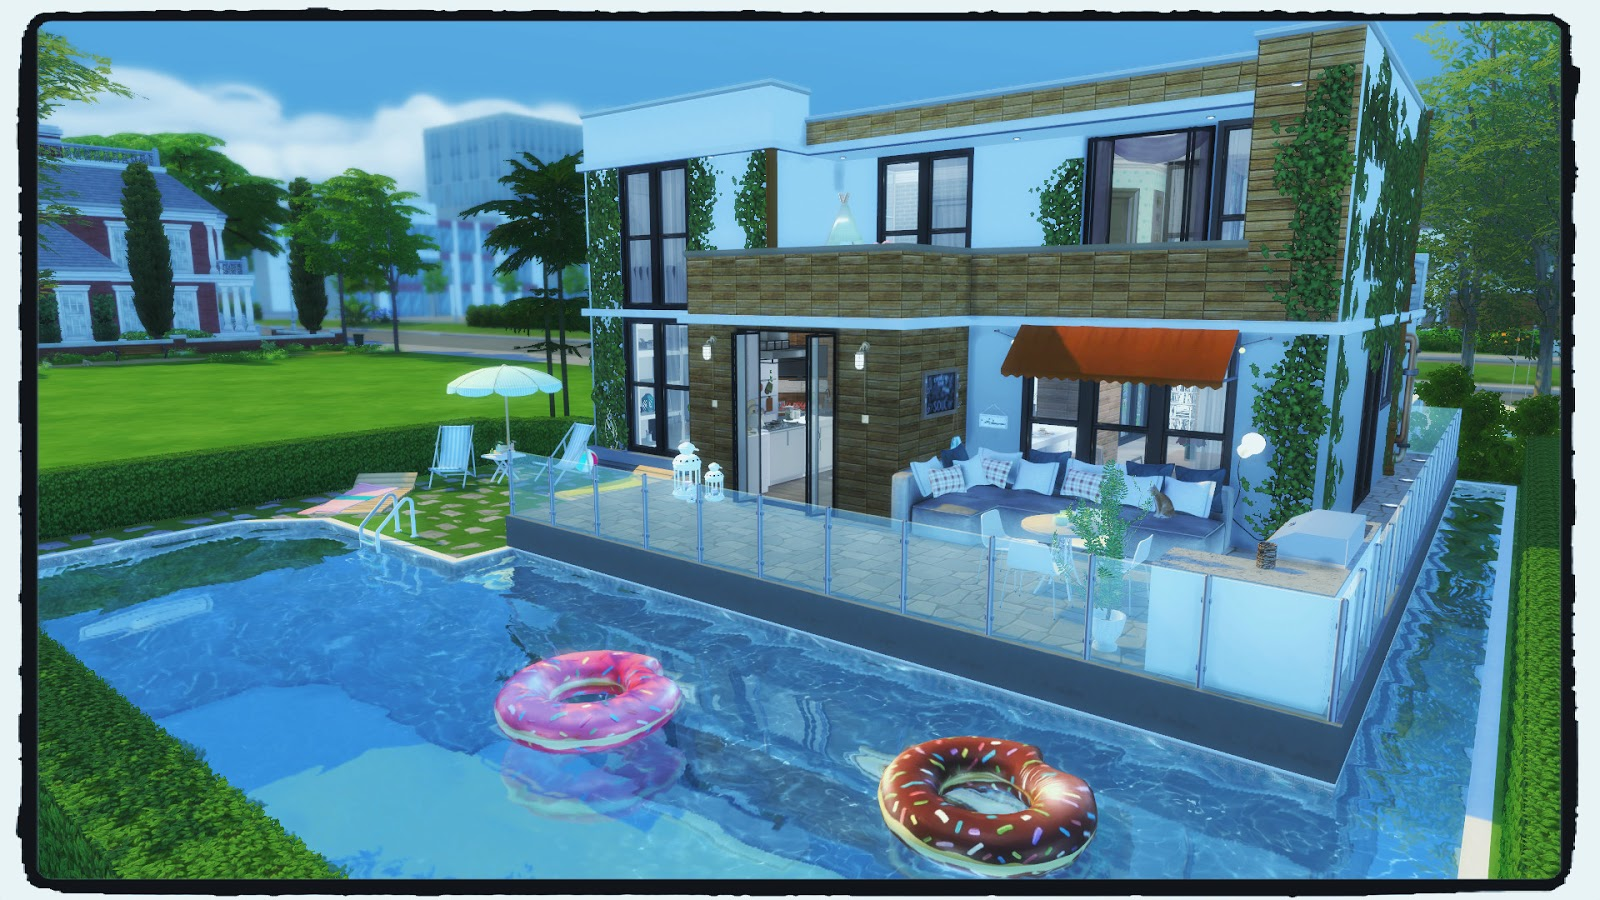 Sims 4 building on newcrest modern house with pool for Pool design sims 4